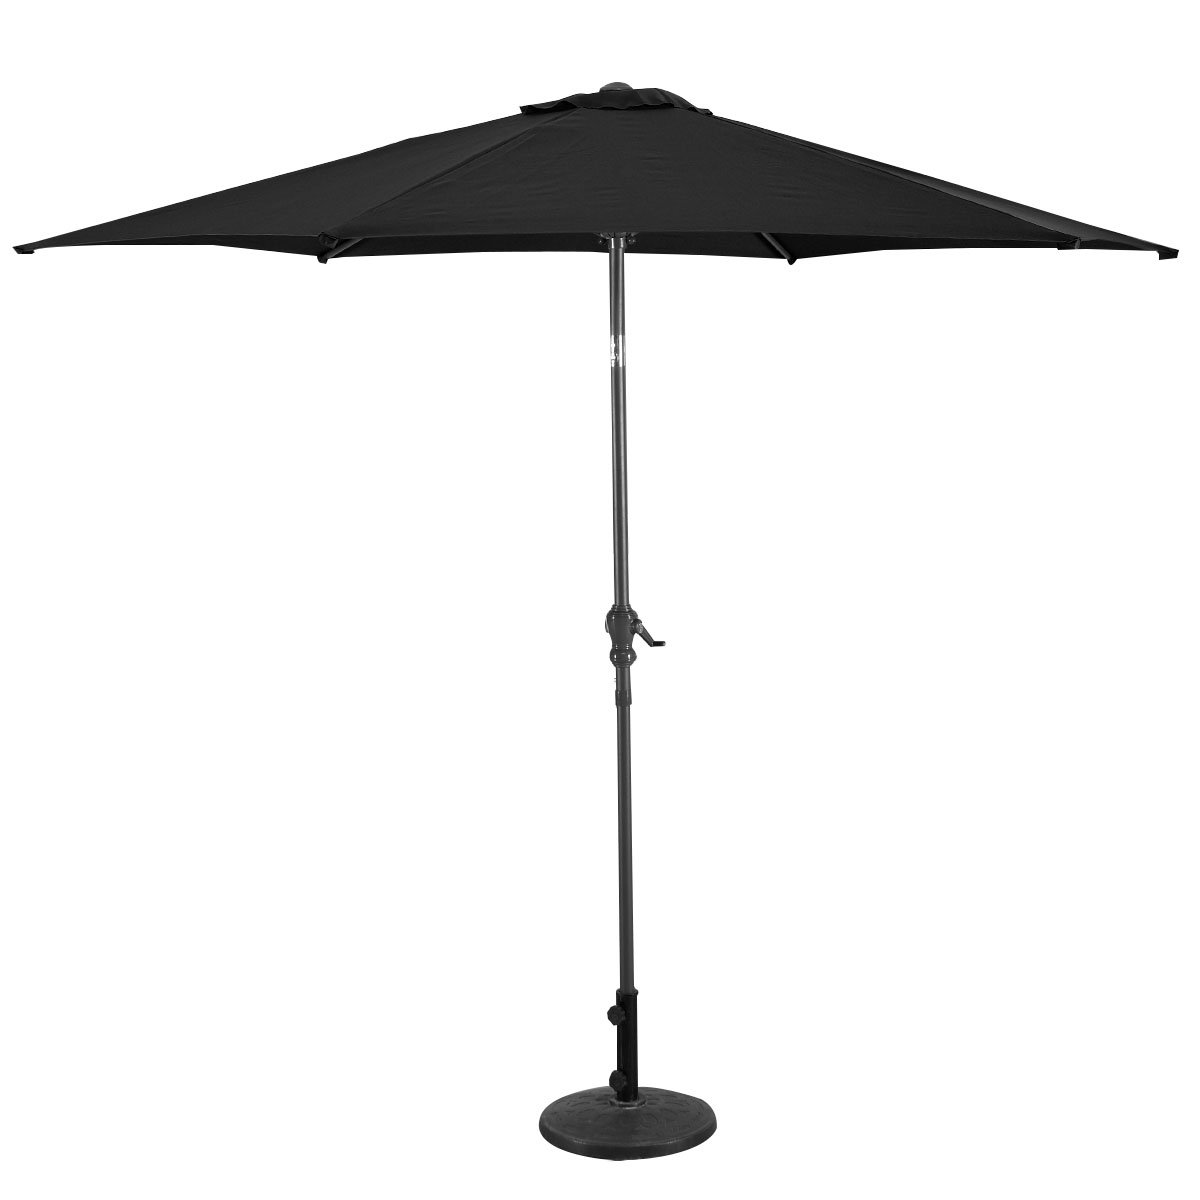 COSTWAY 2.7M Garden Parasol Metal Steel Crank Sunshade Umbrella Patio Outdoor (2.7M, Black)